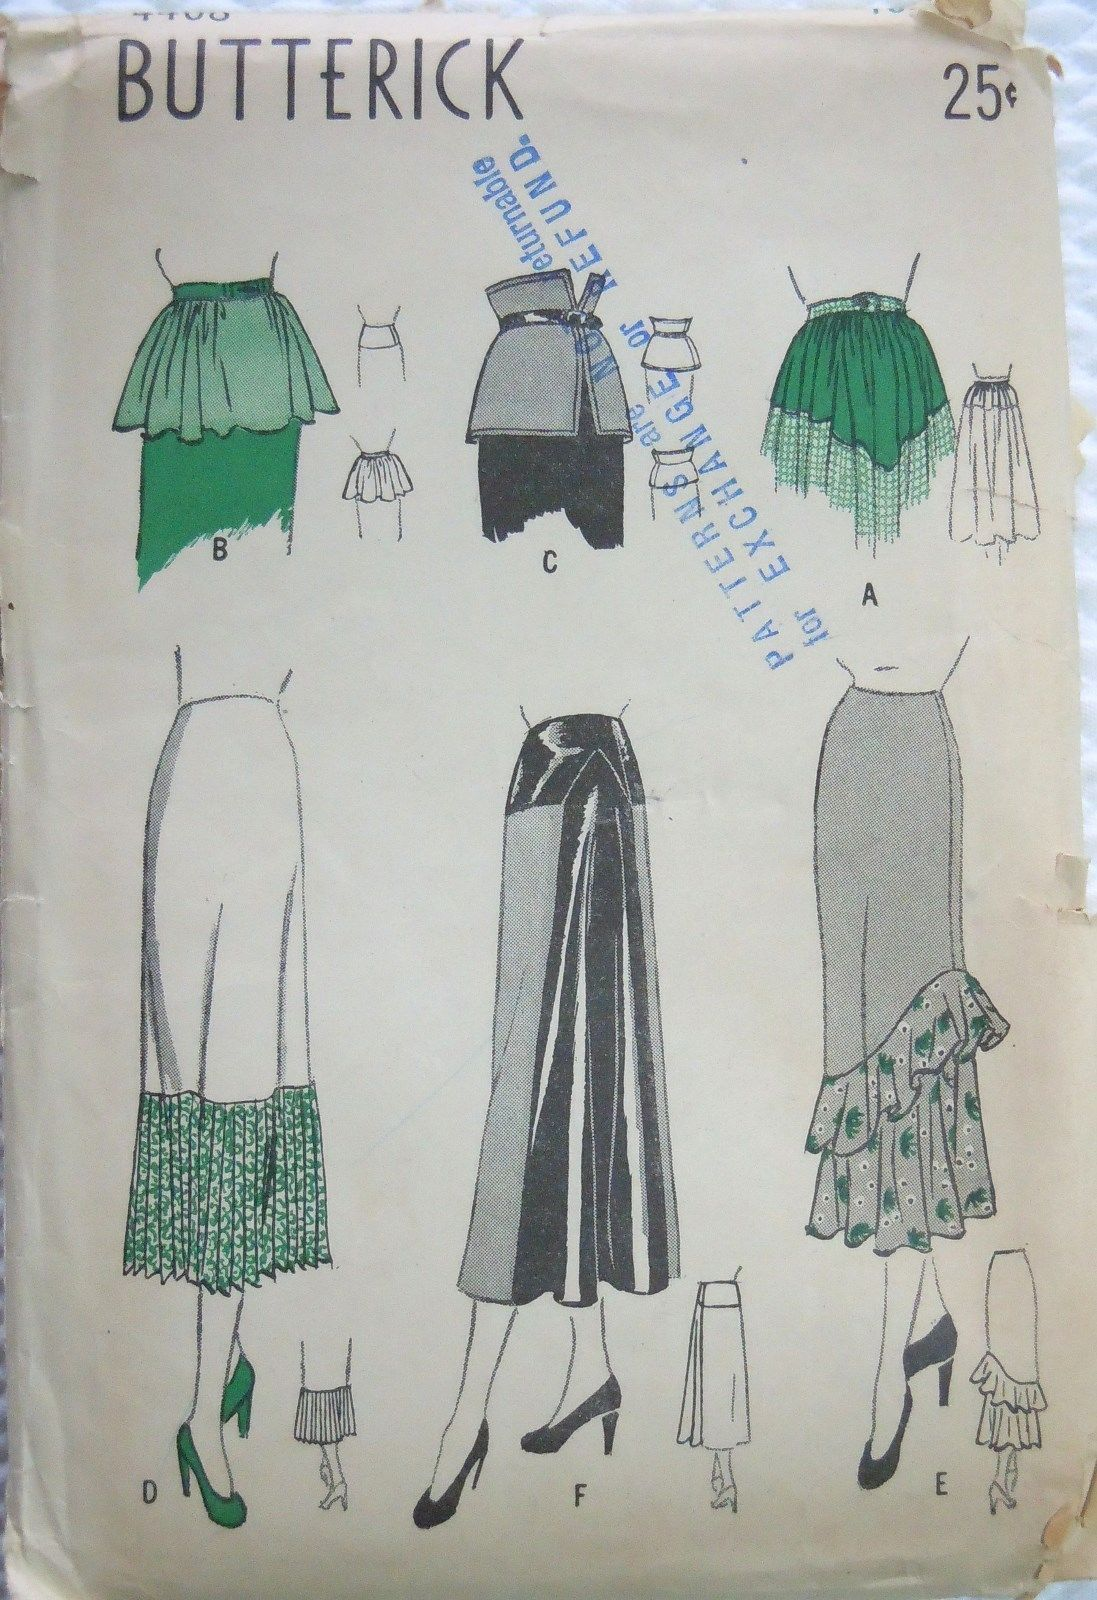 Vtg 1940's Butterick Pattern 4408 Skirt Yokes Flounces Peplums